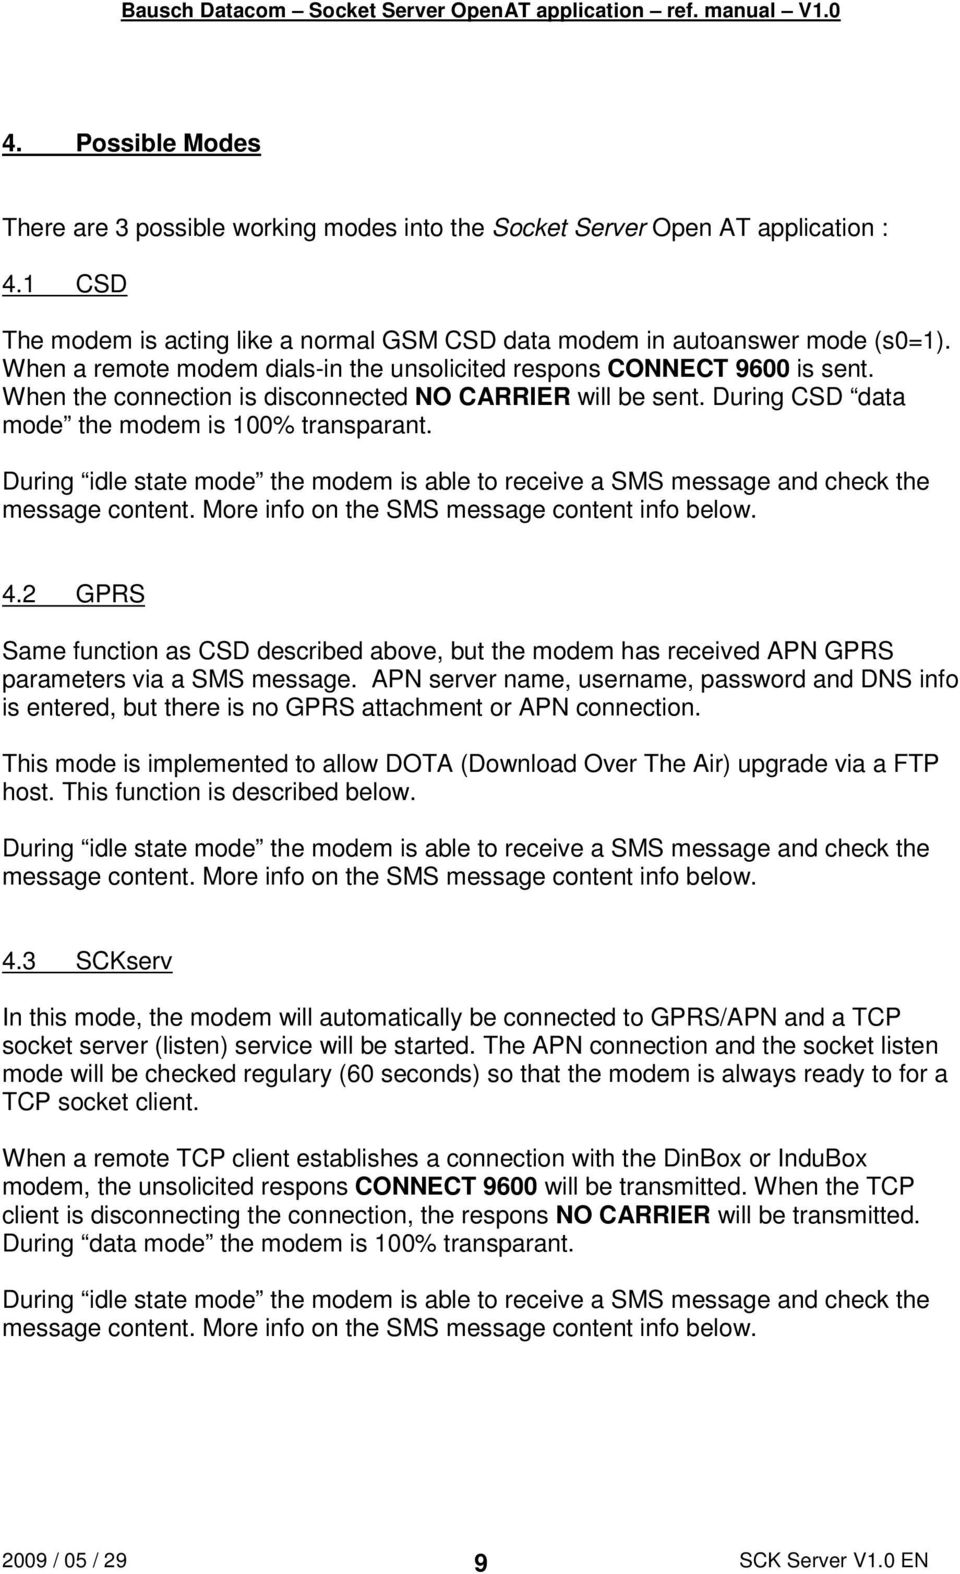 During idle state mode the modem is able to receive a SMS message and check the message content. More info on the SMS message content info below. 4.